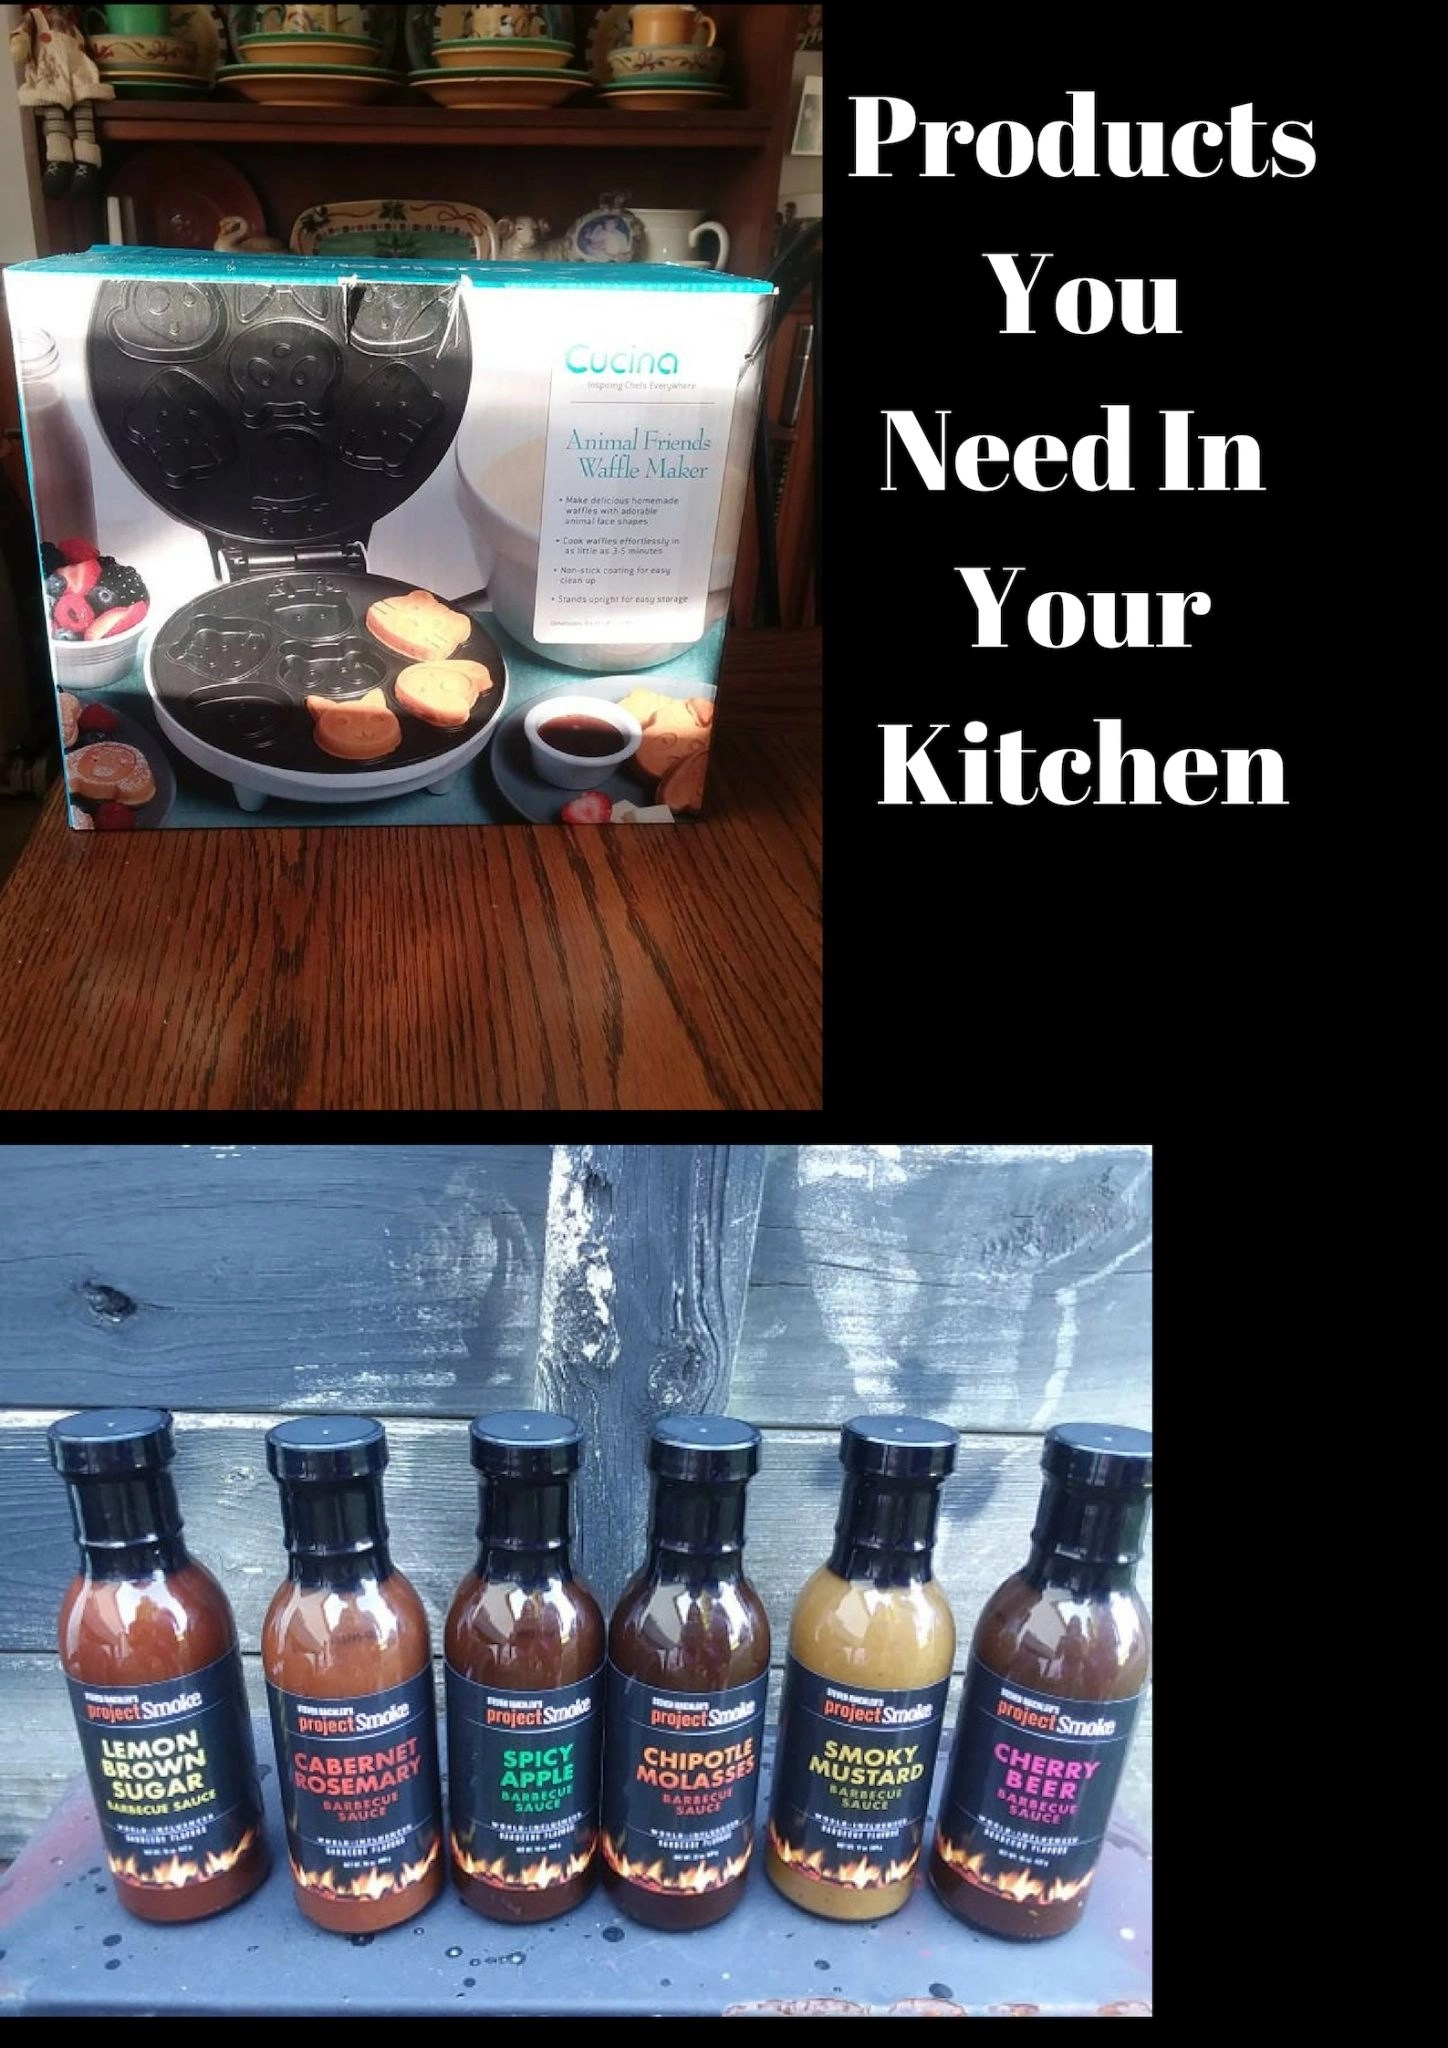 Products You Need In Your Kitchen